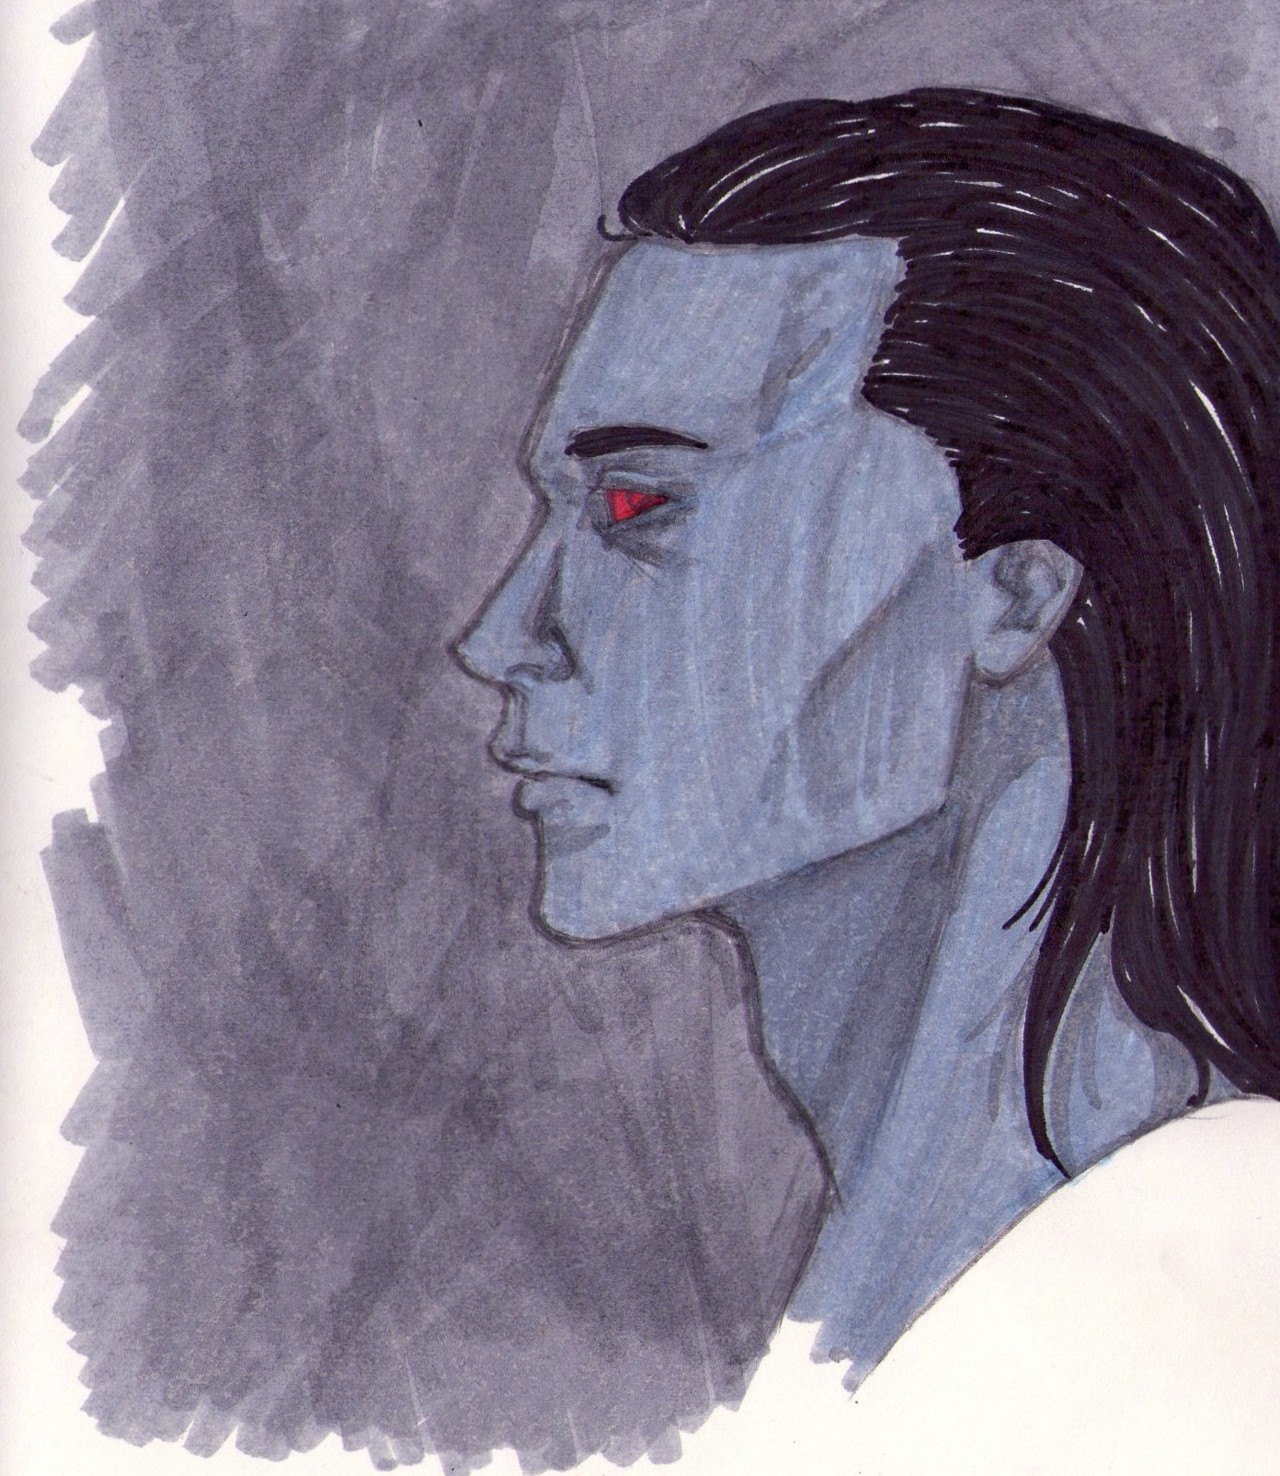 Oh hey guys. I drew Loki again! As a Jotun. But I don't know the designs in his skin, so I let them be. Also, he's looking a tad grey…